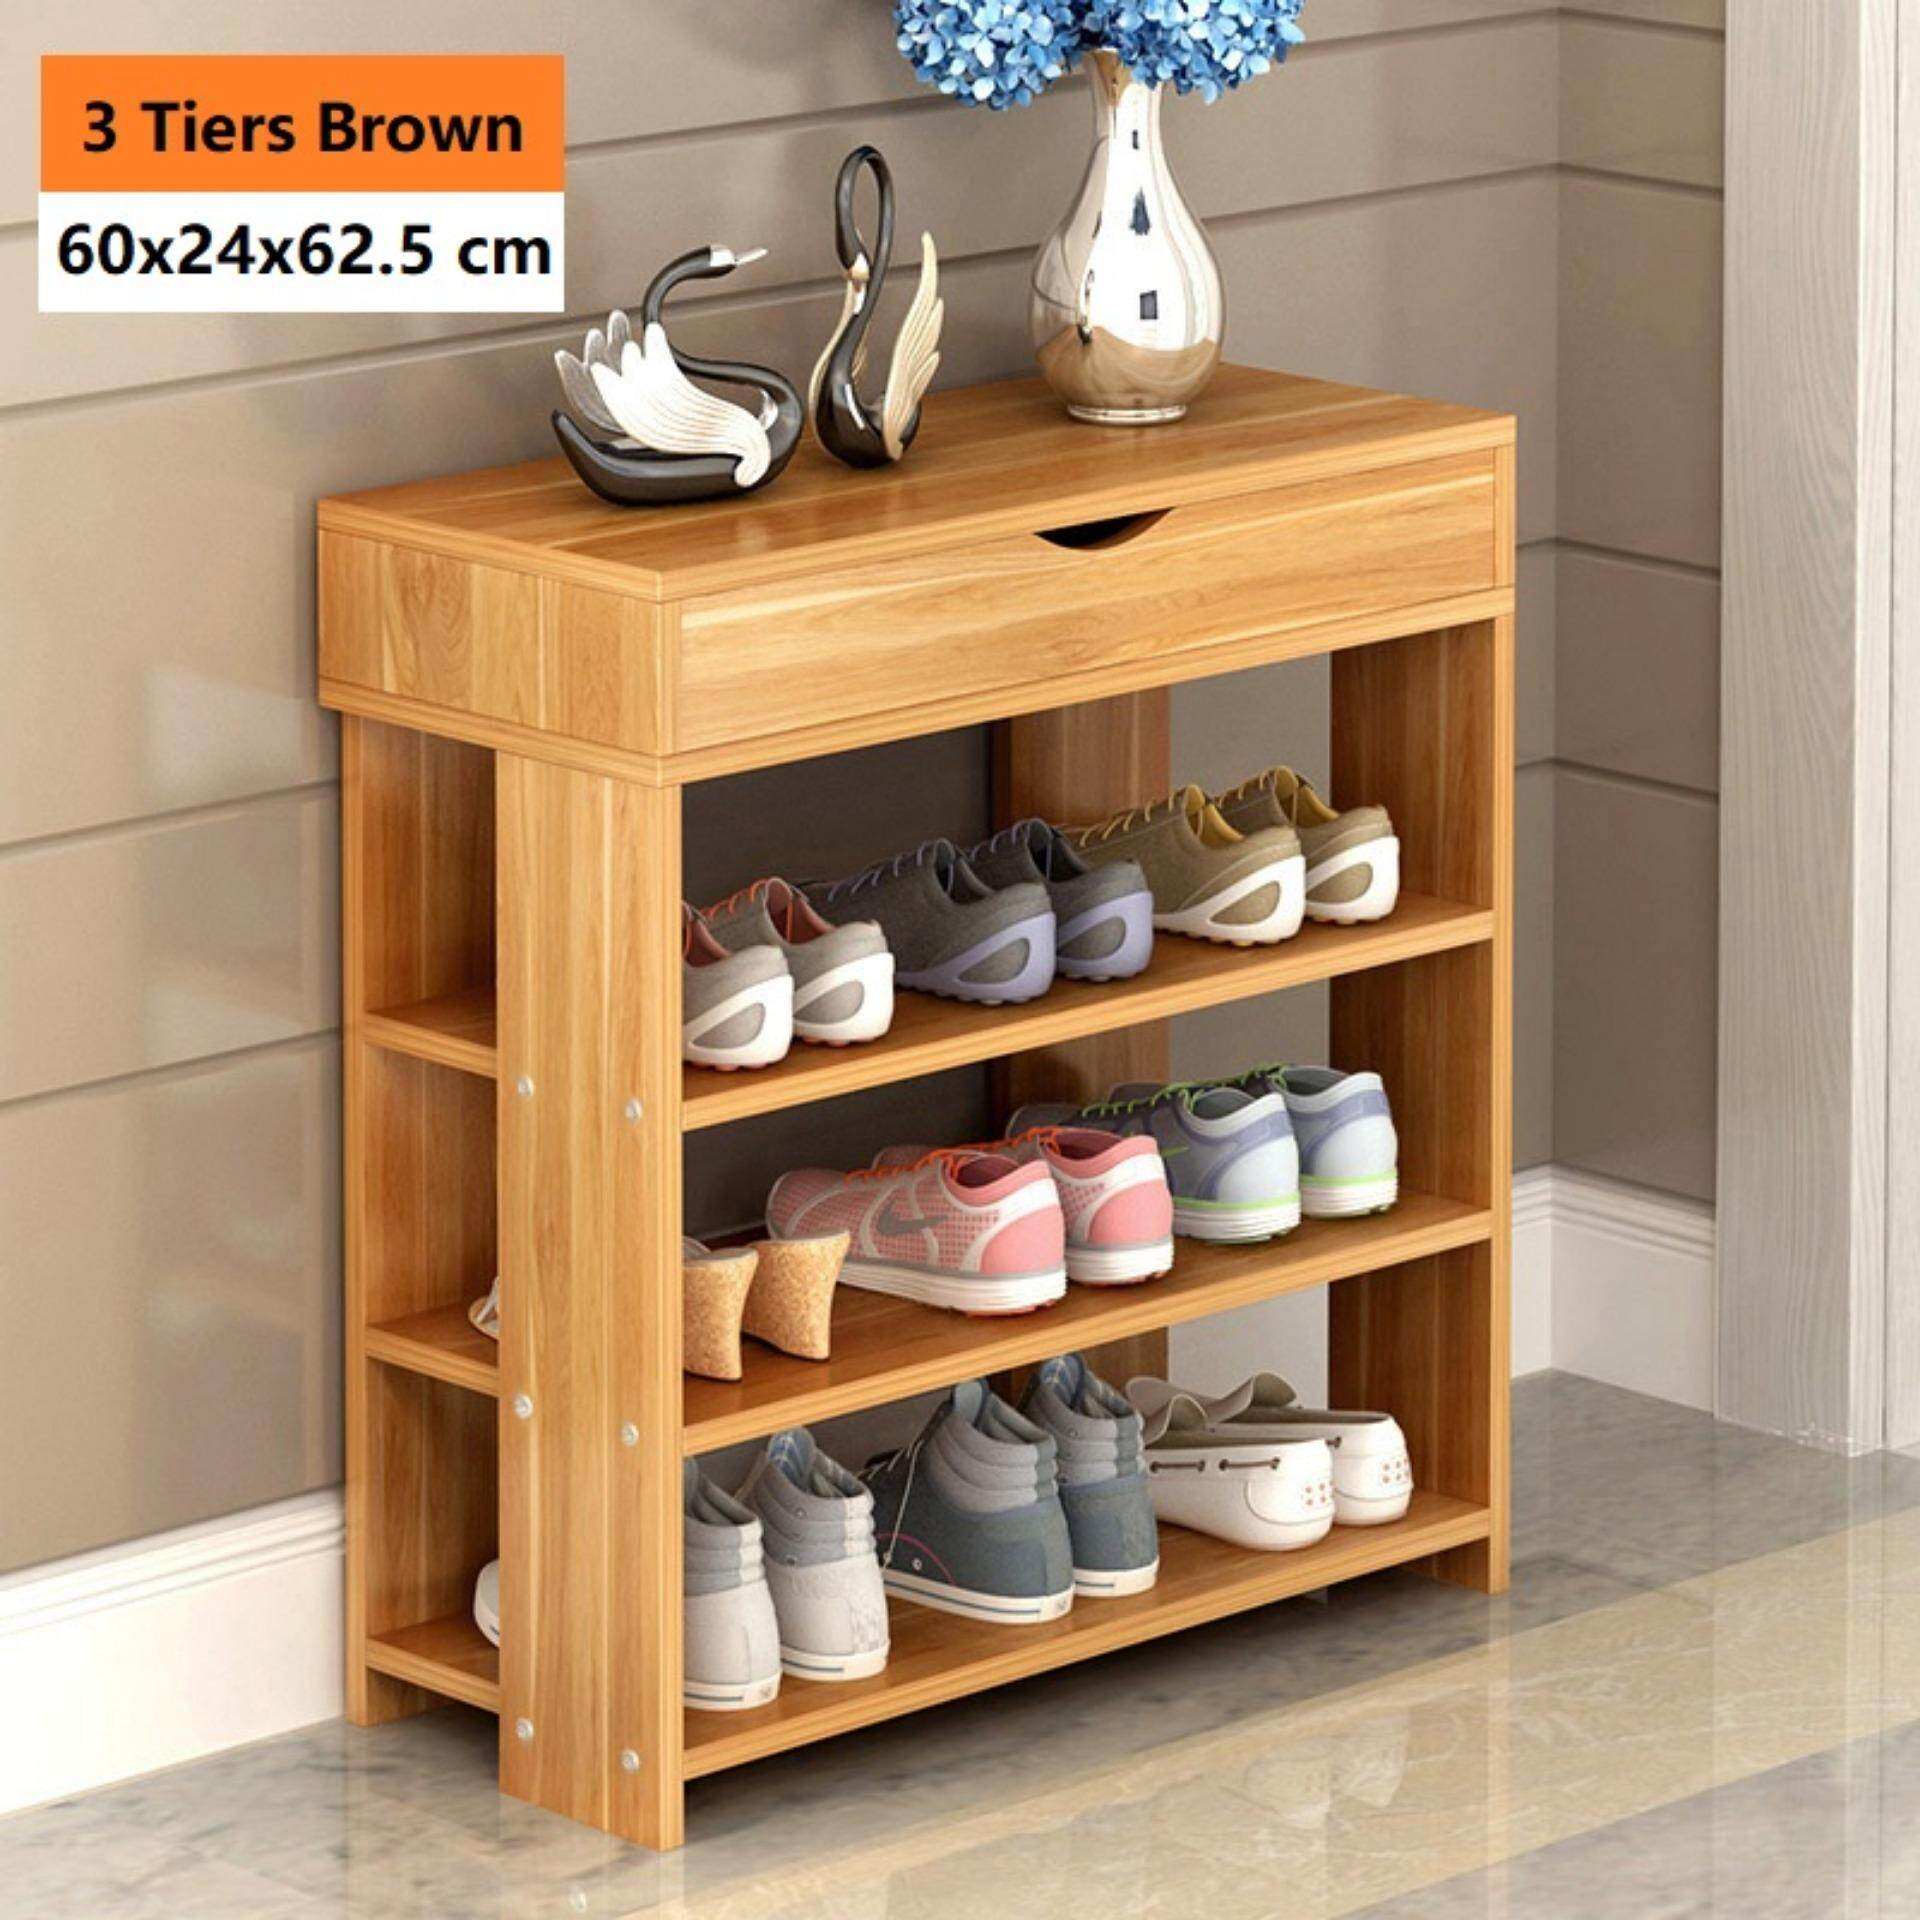 3 Tiers Wooden Shoe Rack Storage Shelves with Cabinet (Brown) Malaysia & 3 Tiers Wooden Shoe Rack Storage Shelves with Cabinet (Brown)